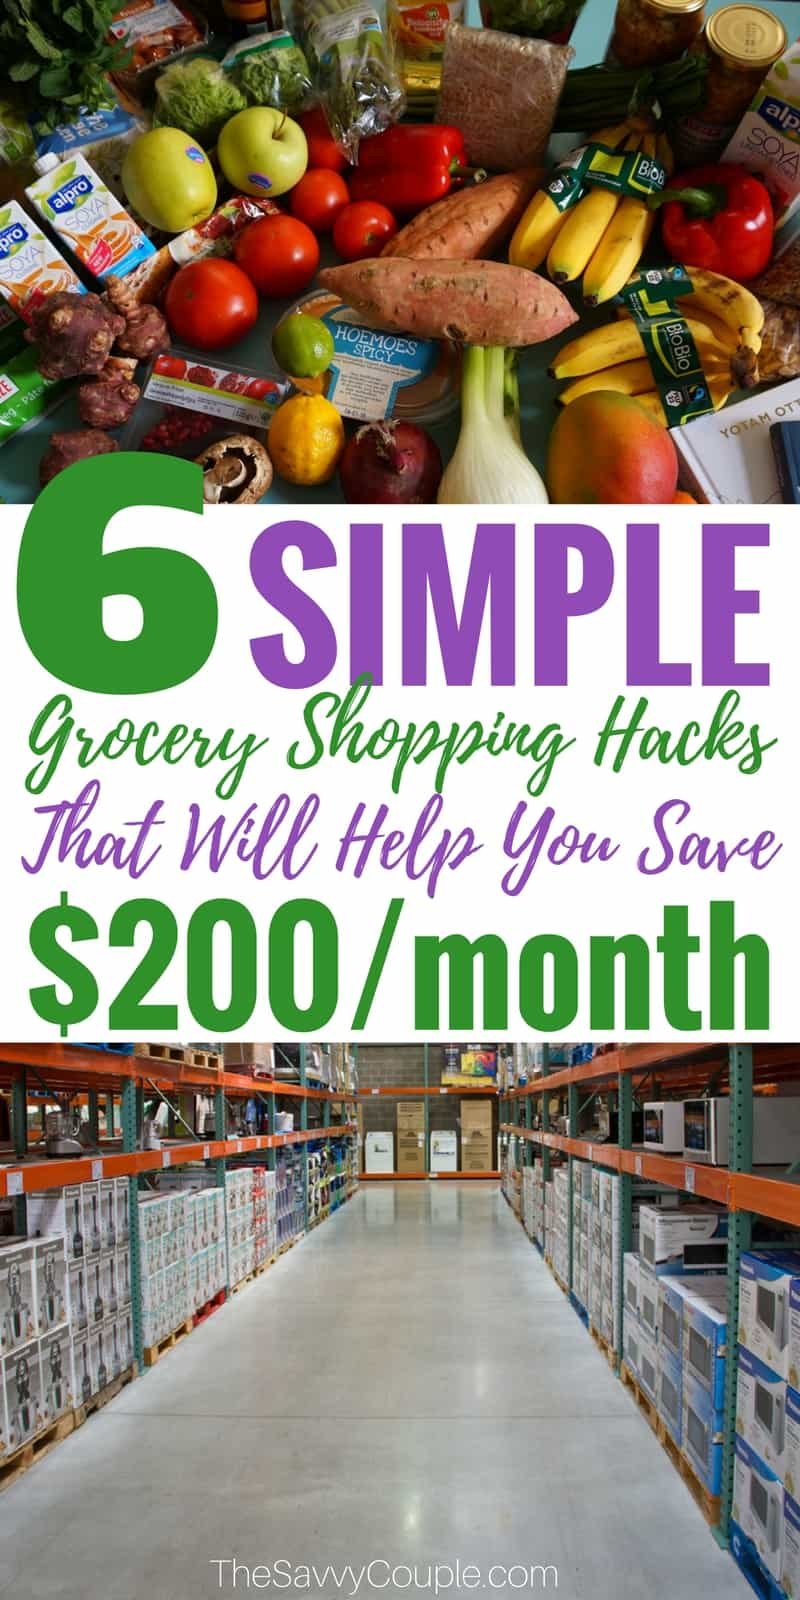 These ways to save money on your grocery budget are GENIUS! I am so glad I found these to help me SAVE MONEY and CUT SPENDING. My grocery spending went down over $100 per month after following these tips! Pin this! #GroceryShopping #MealPlanning #SaveMoney #Family #Budget